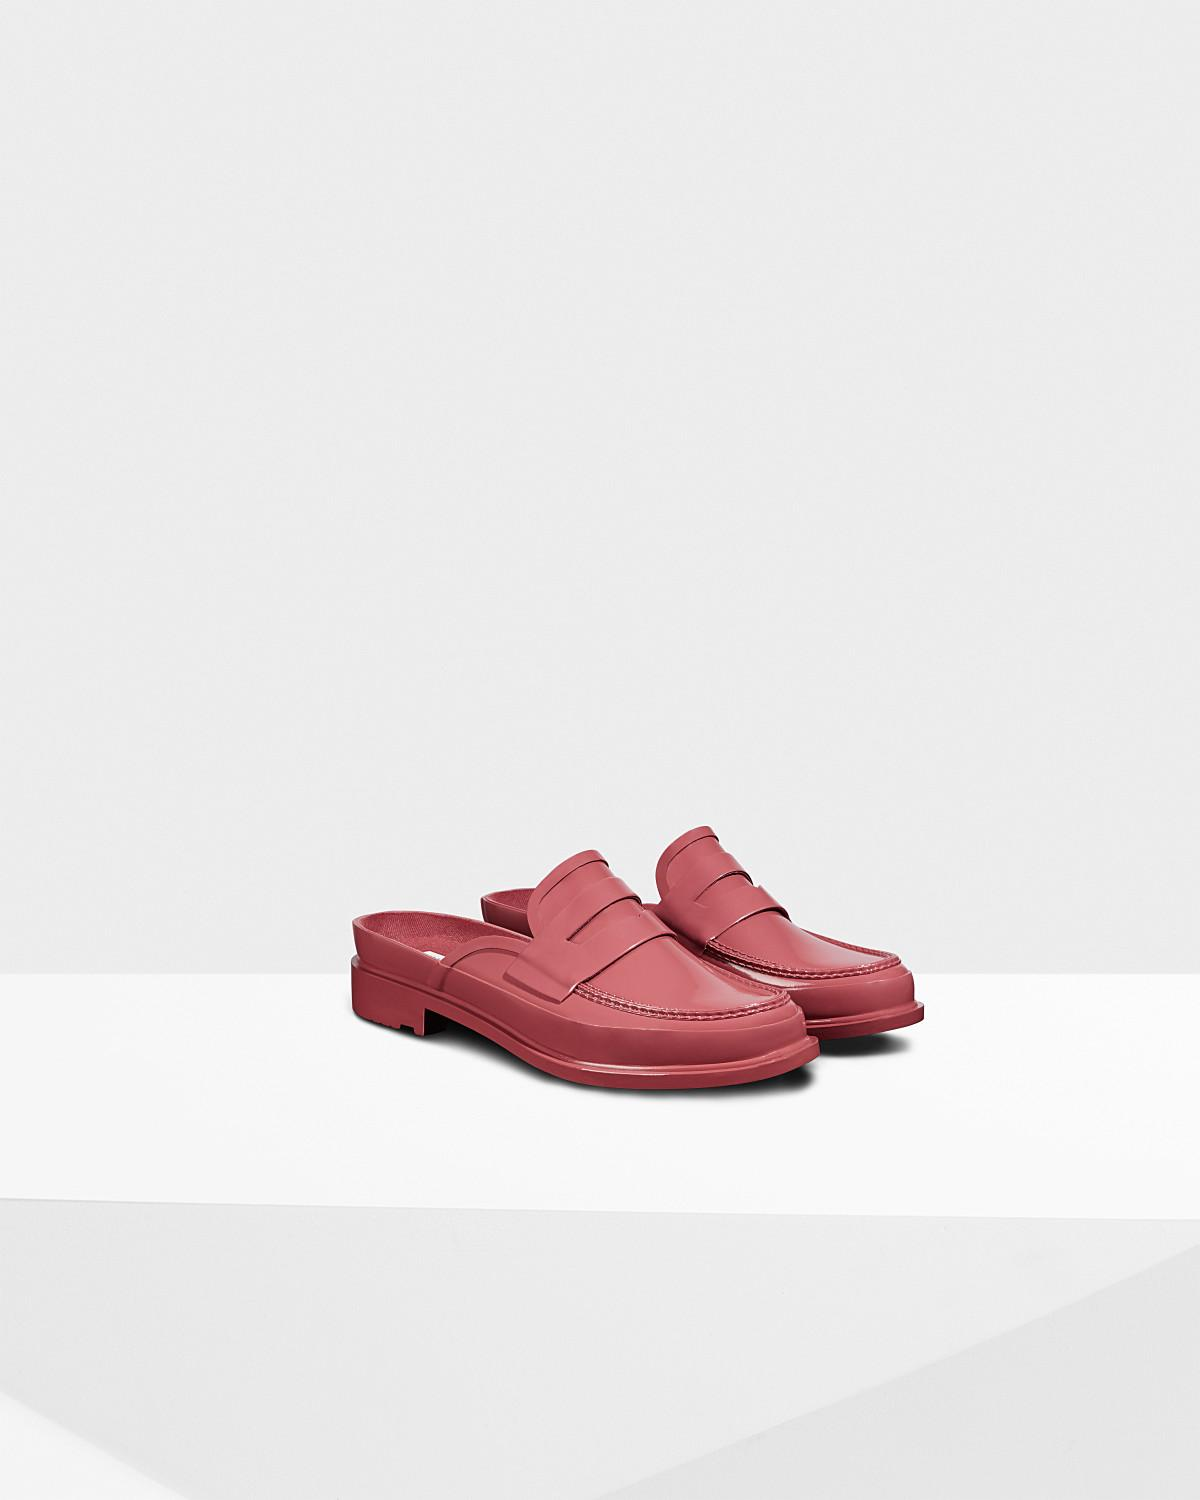 4e10f54bb75 Lyst - HUNTER Women s Refined Open Back Penny Loafer in Red - Save 31%